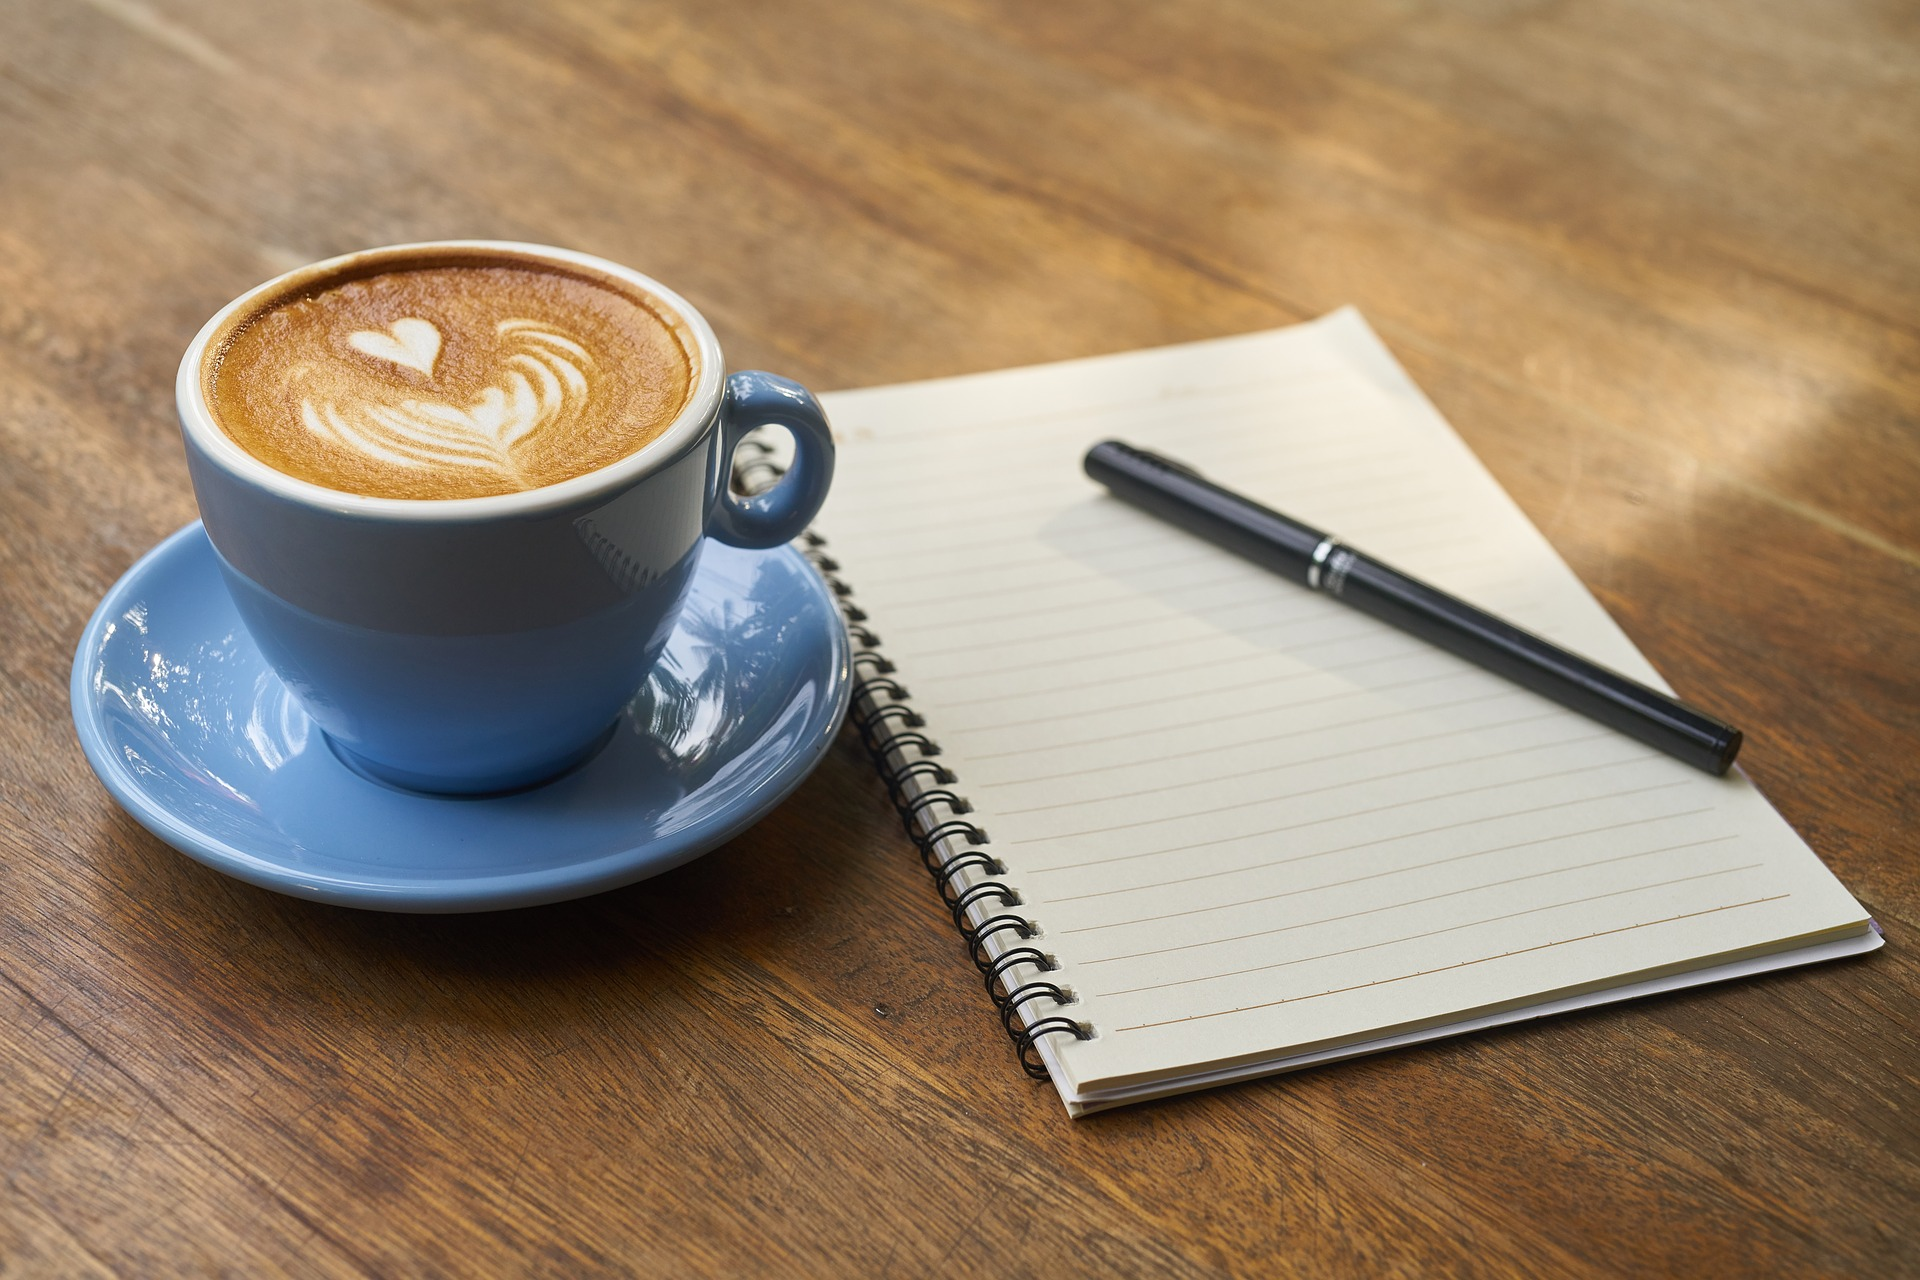 Academic Writing Month (AcWriMo): Creating My Own Version of this Challenge